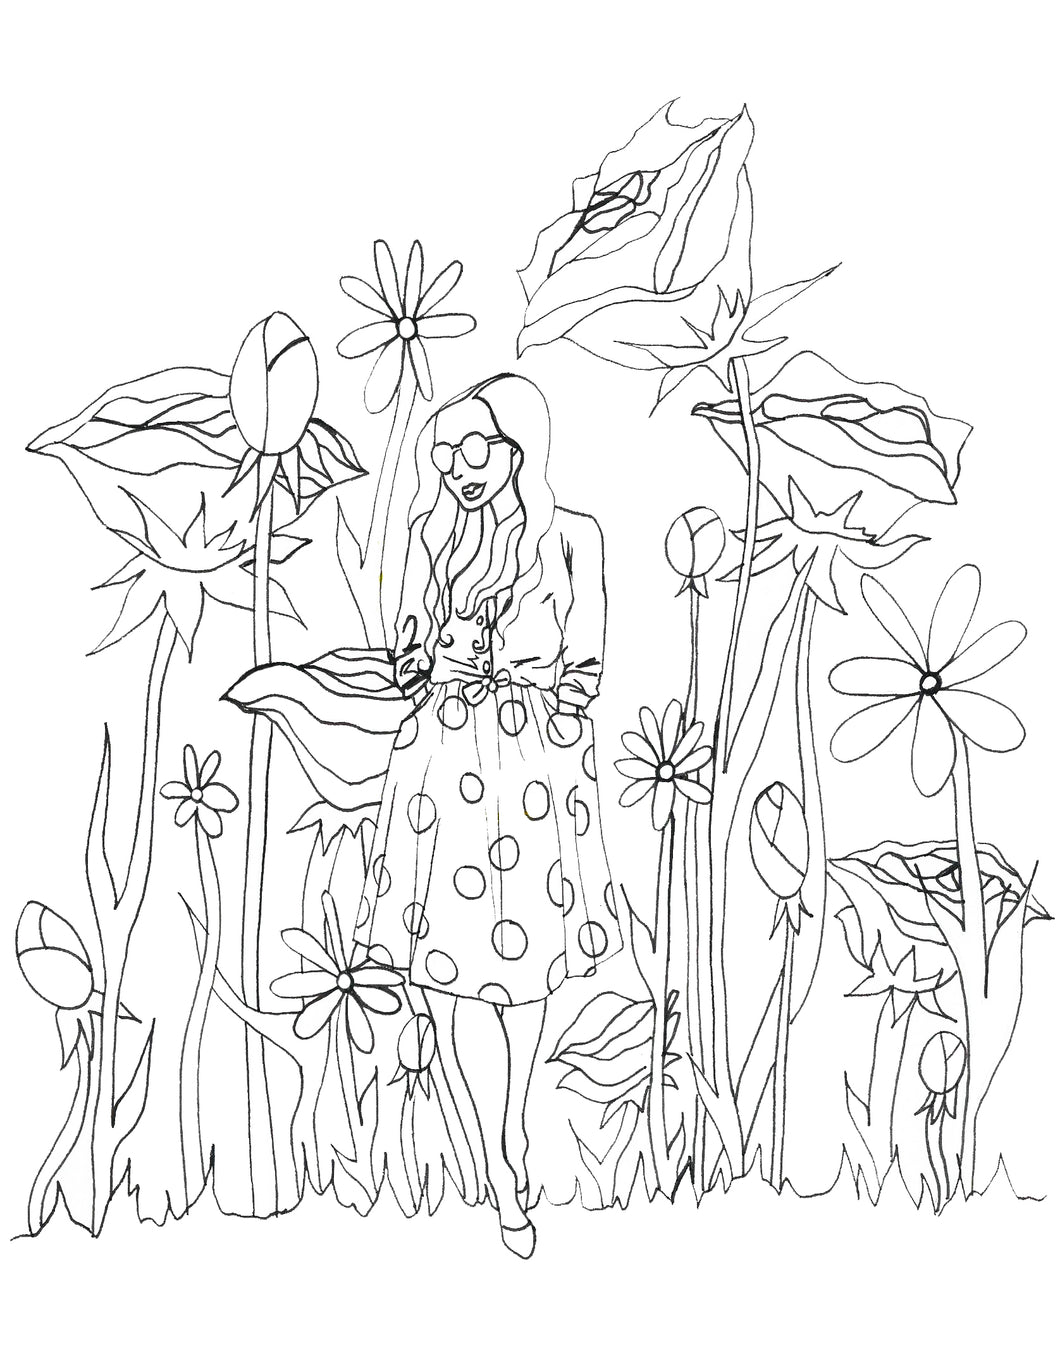 Larger than Life Coloring Page